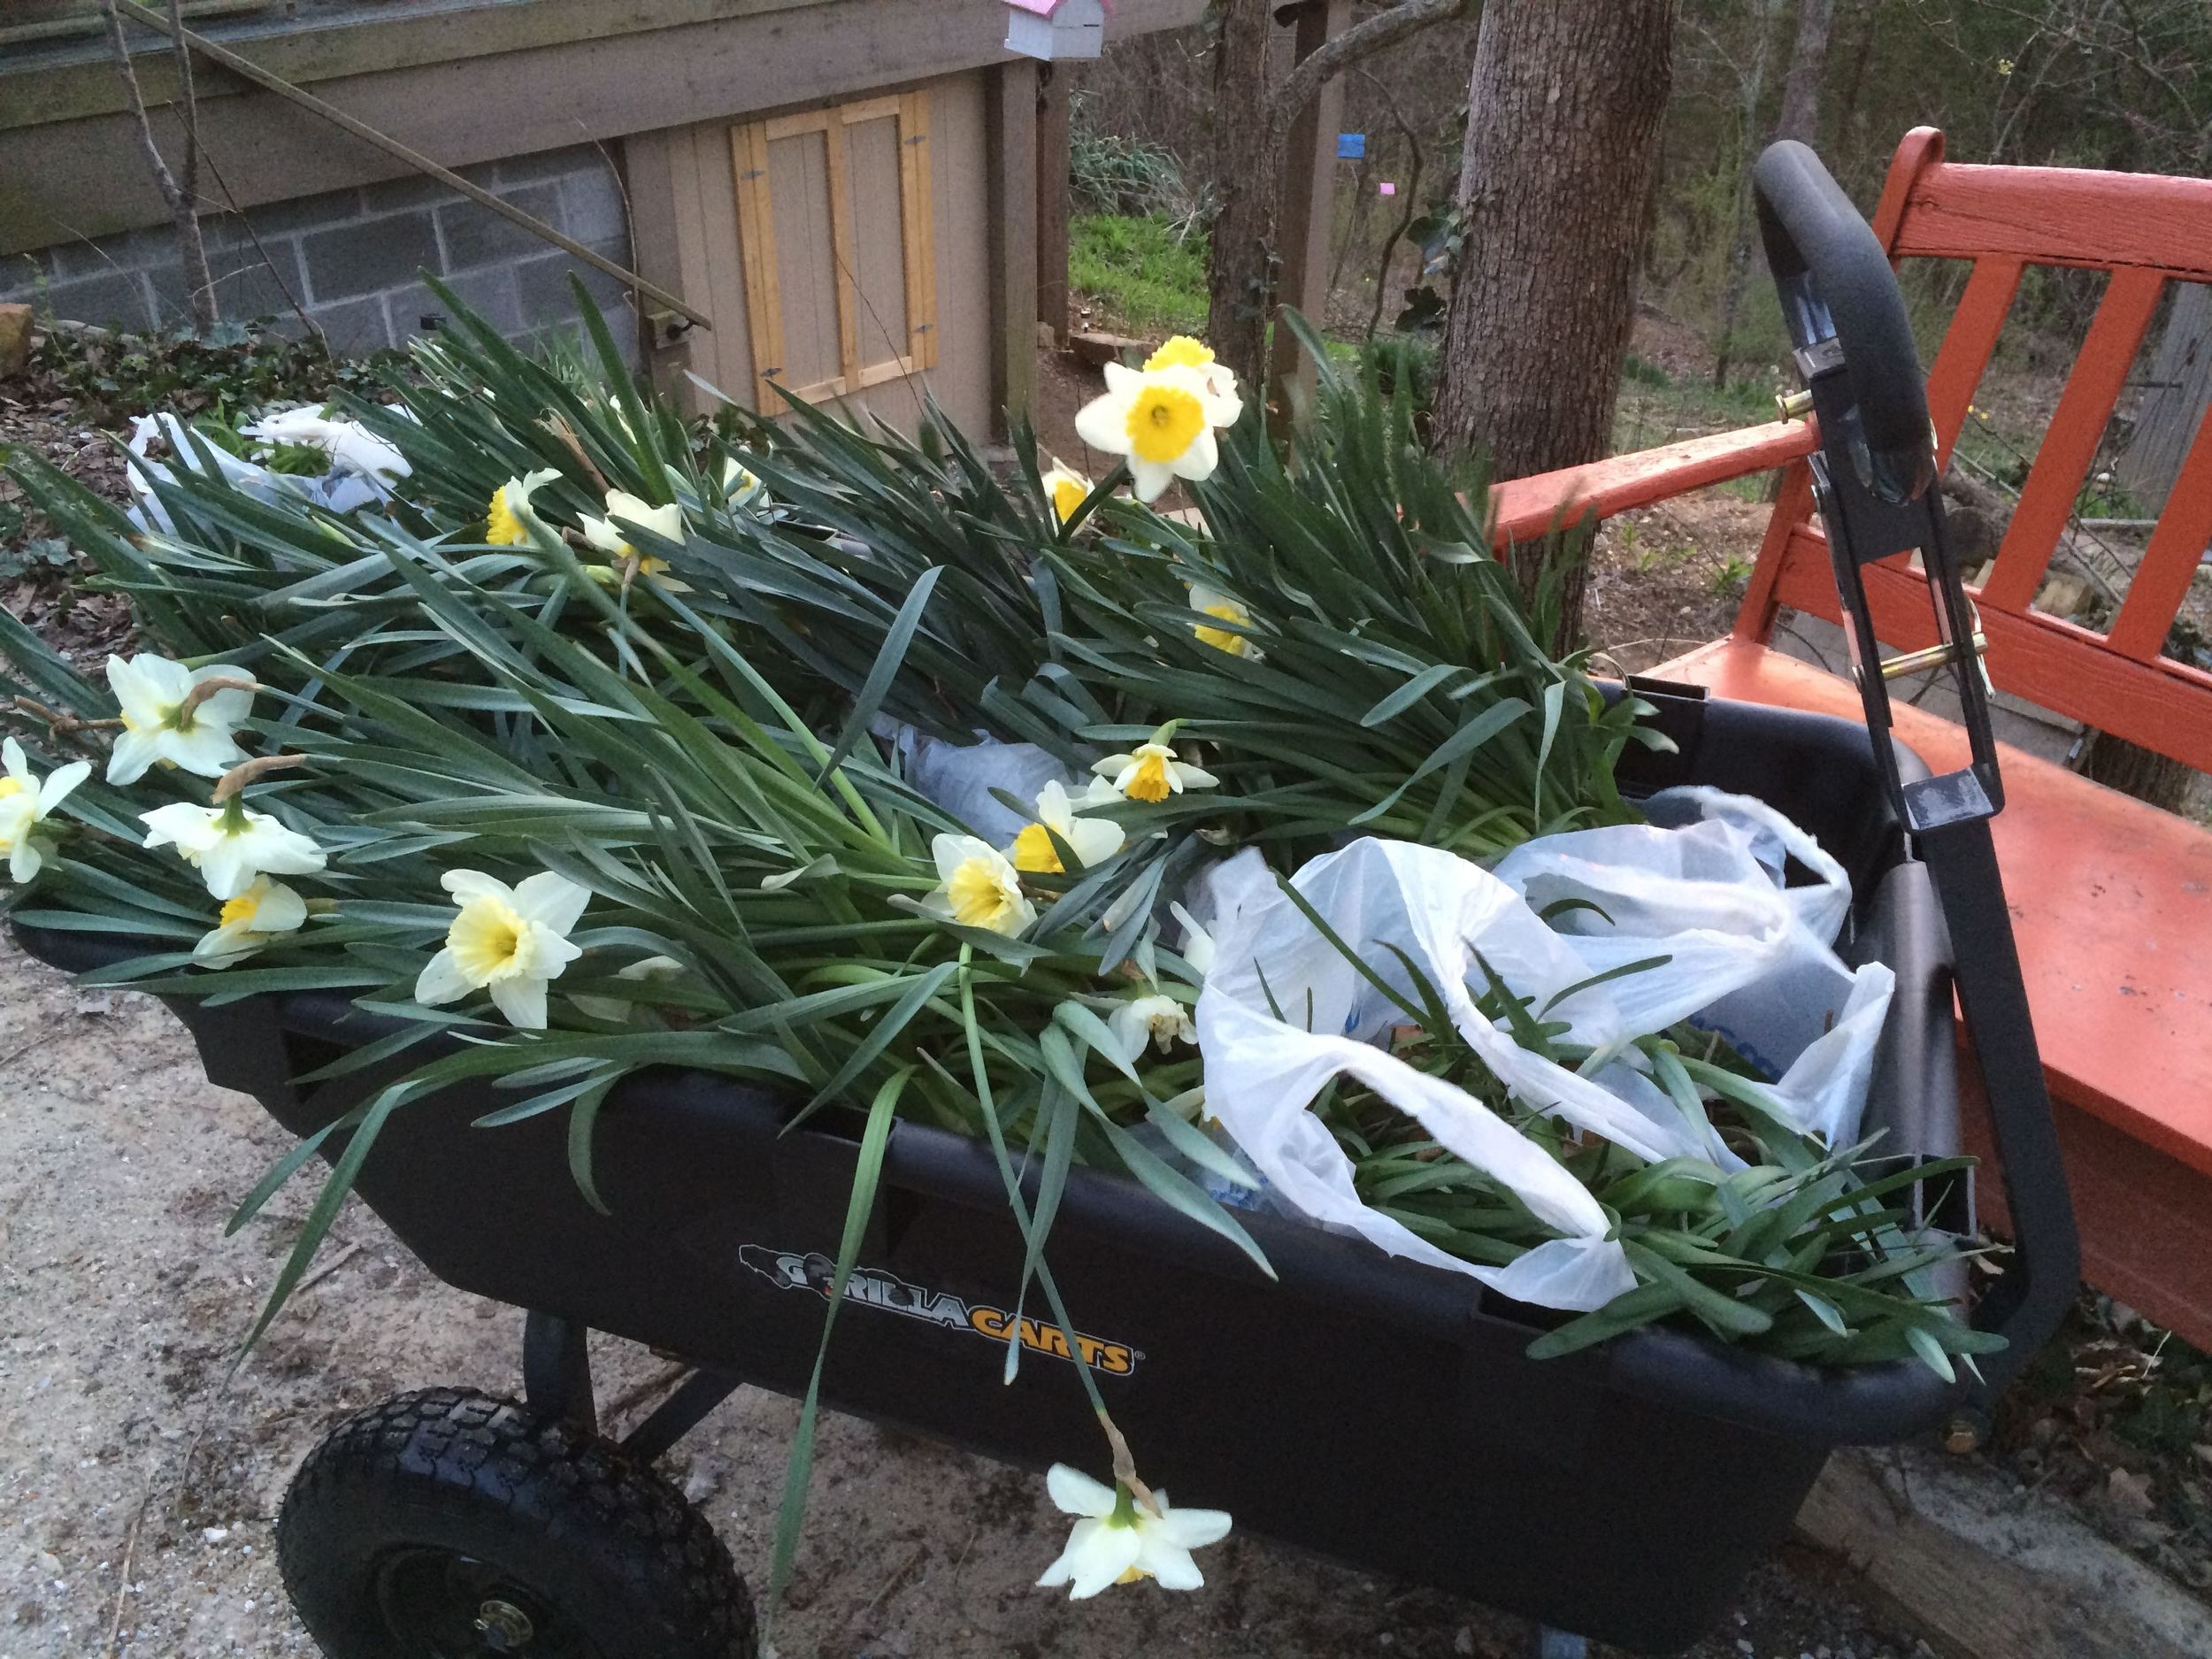 My new gardening cart has an adjustable handle and moves on its axel like a dump truck.